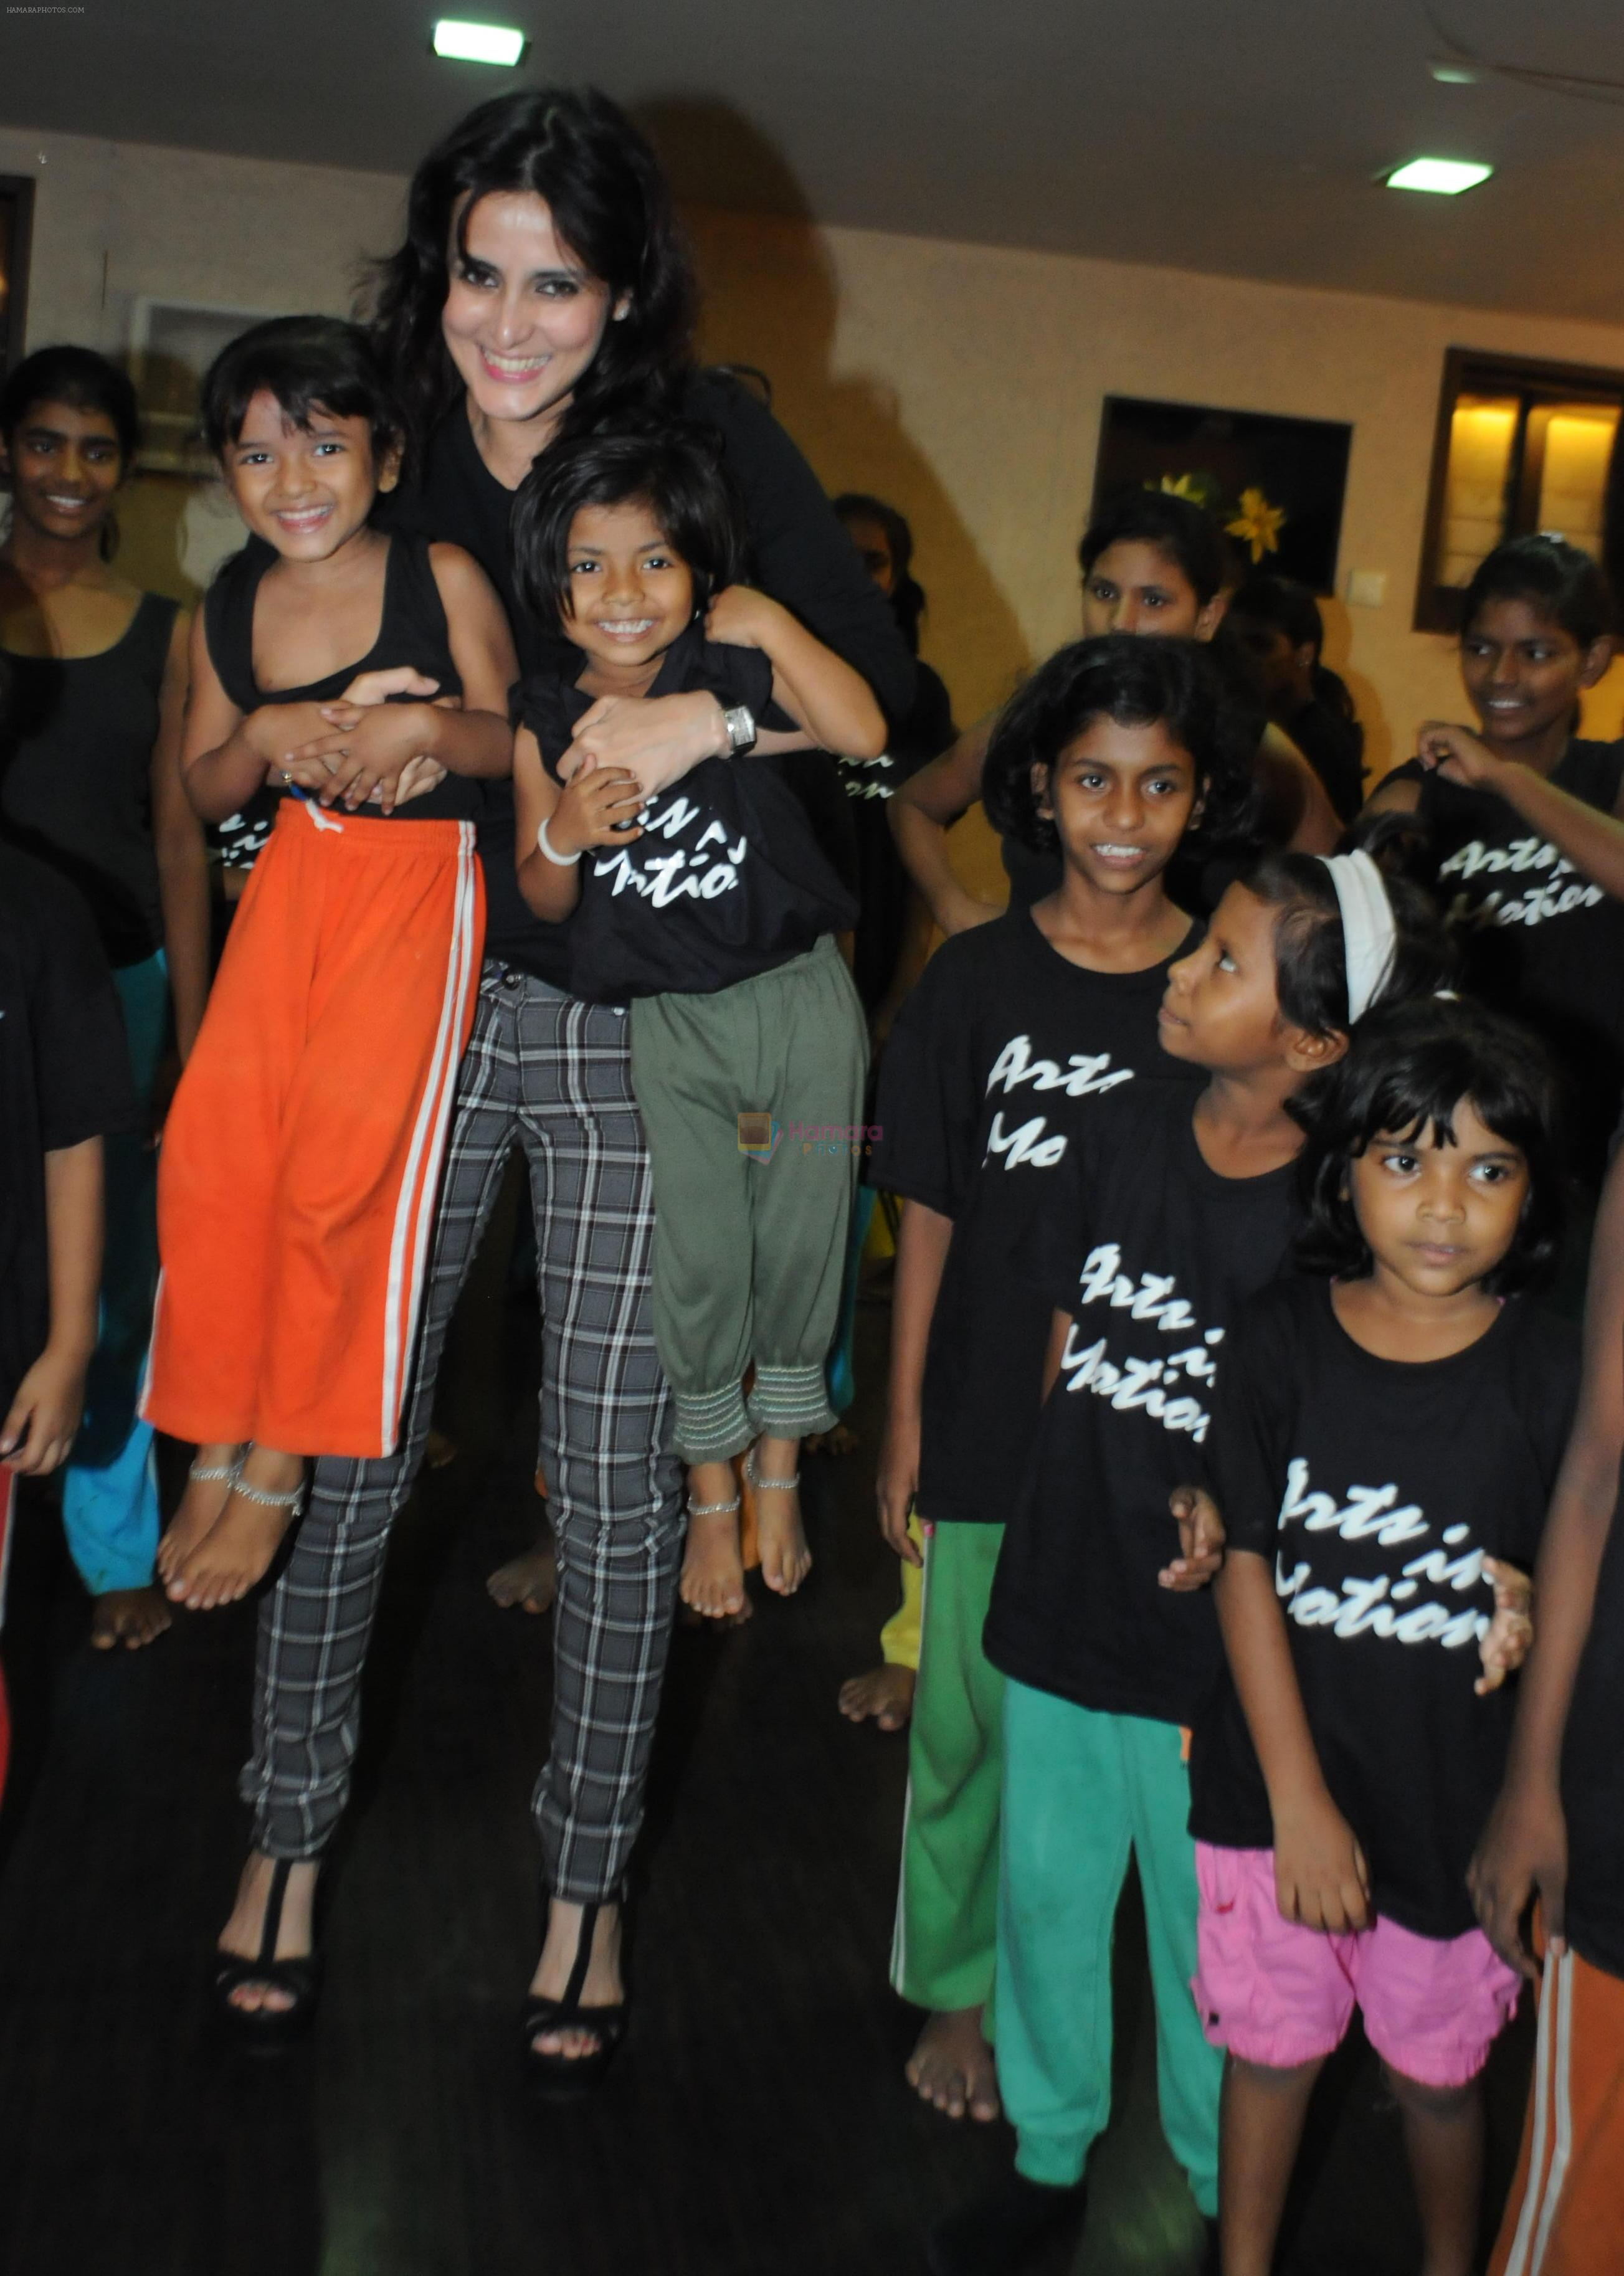 Tulip joshi meets and greets the special girl children at arts in tulip joshi meets and greets the special girl children at arts in motions dance with joy on 20th july 2012 m4hsunfo